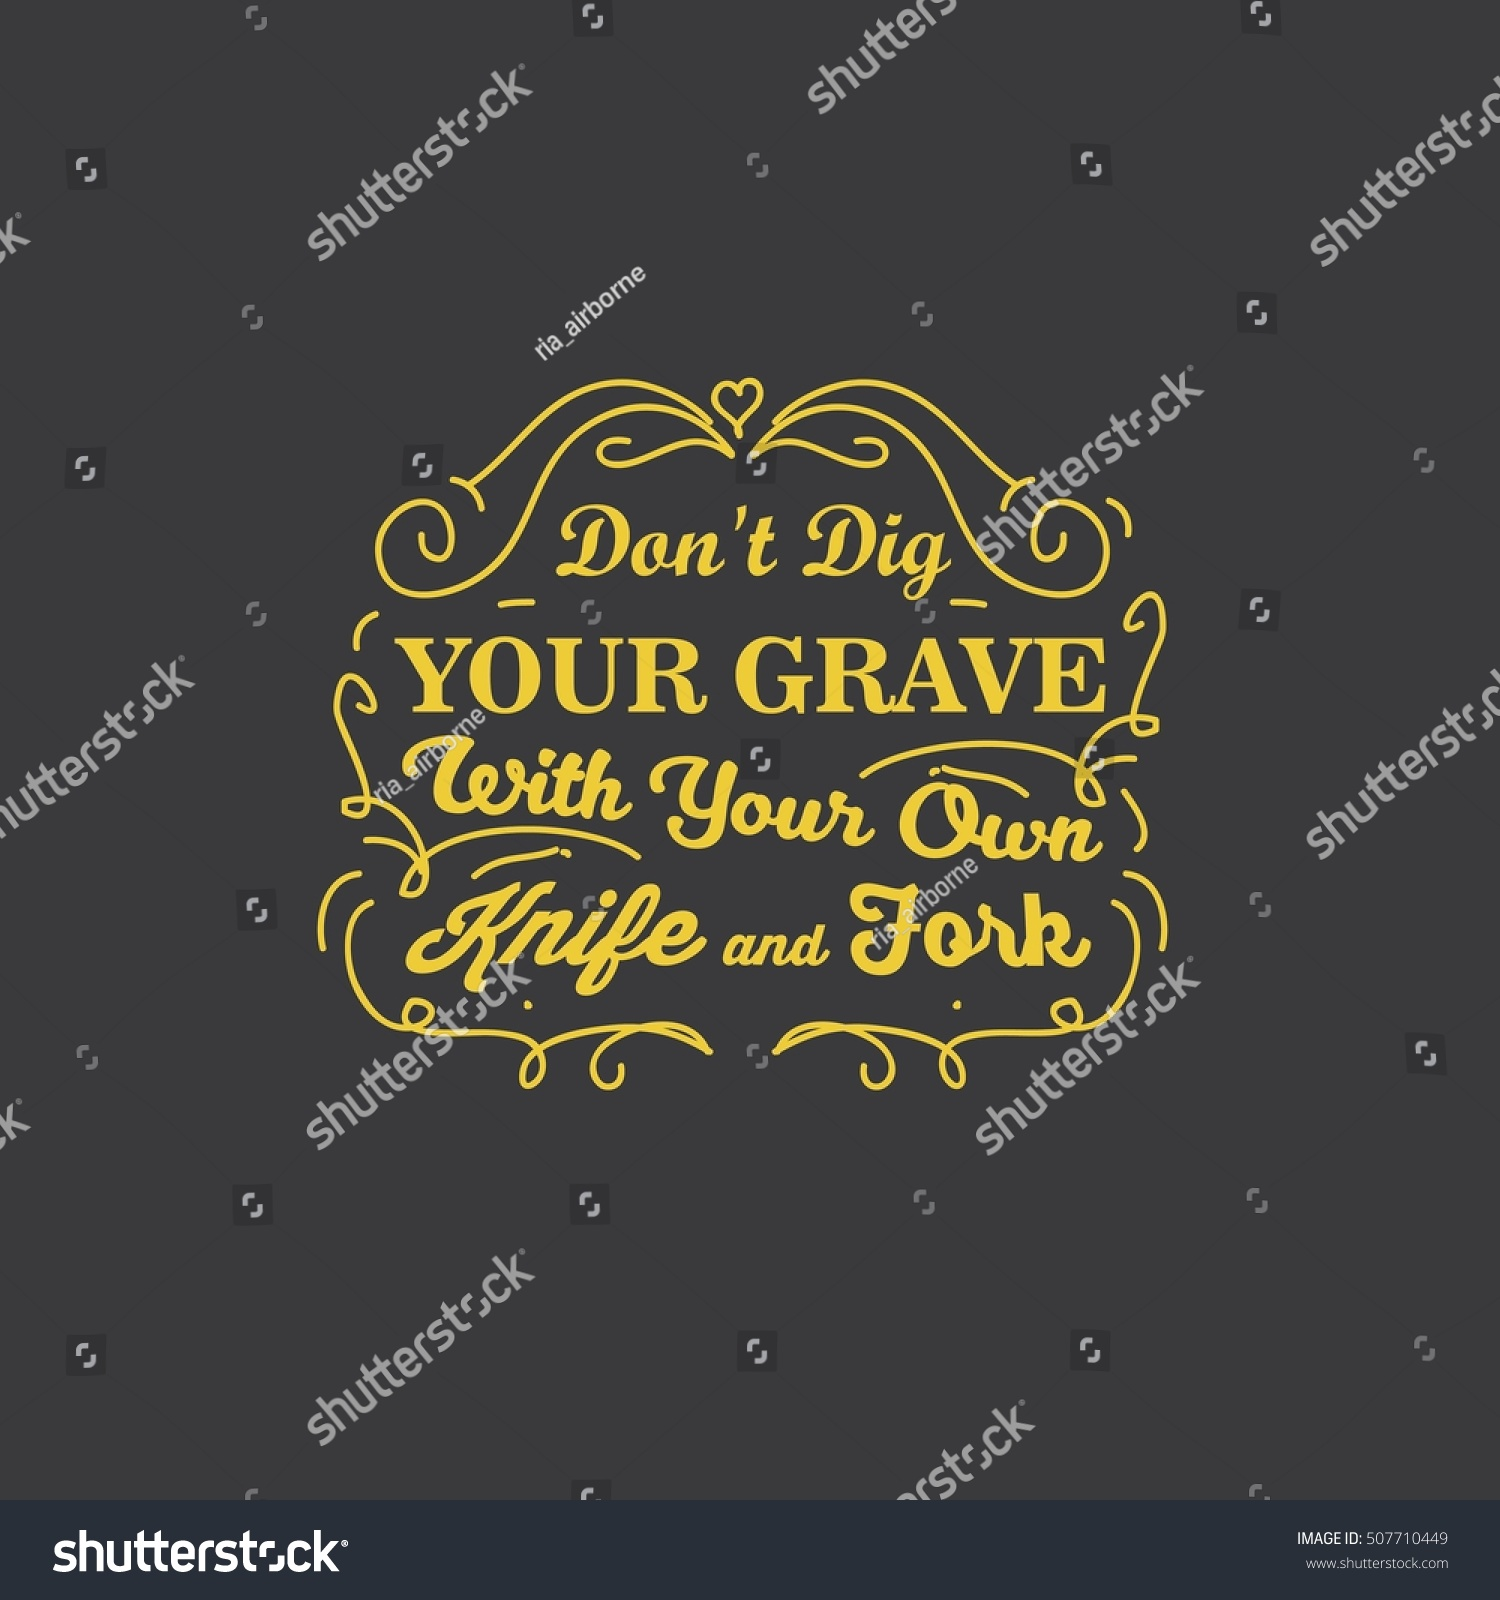 Good Health Quotes Health Quotes Good Food Quotes Stock Vector 507710449  Shutterstock